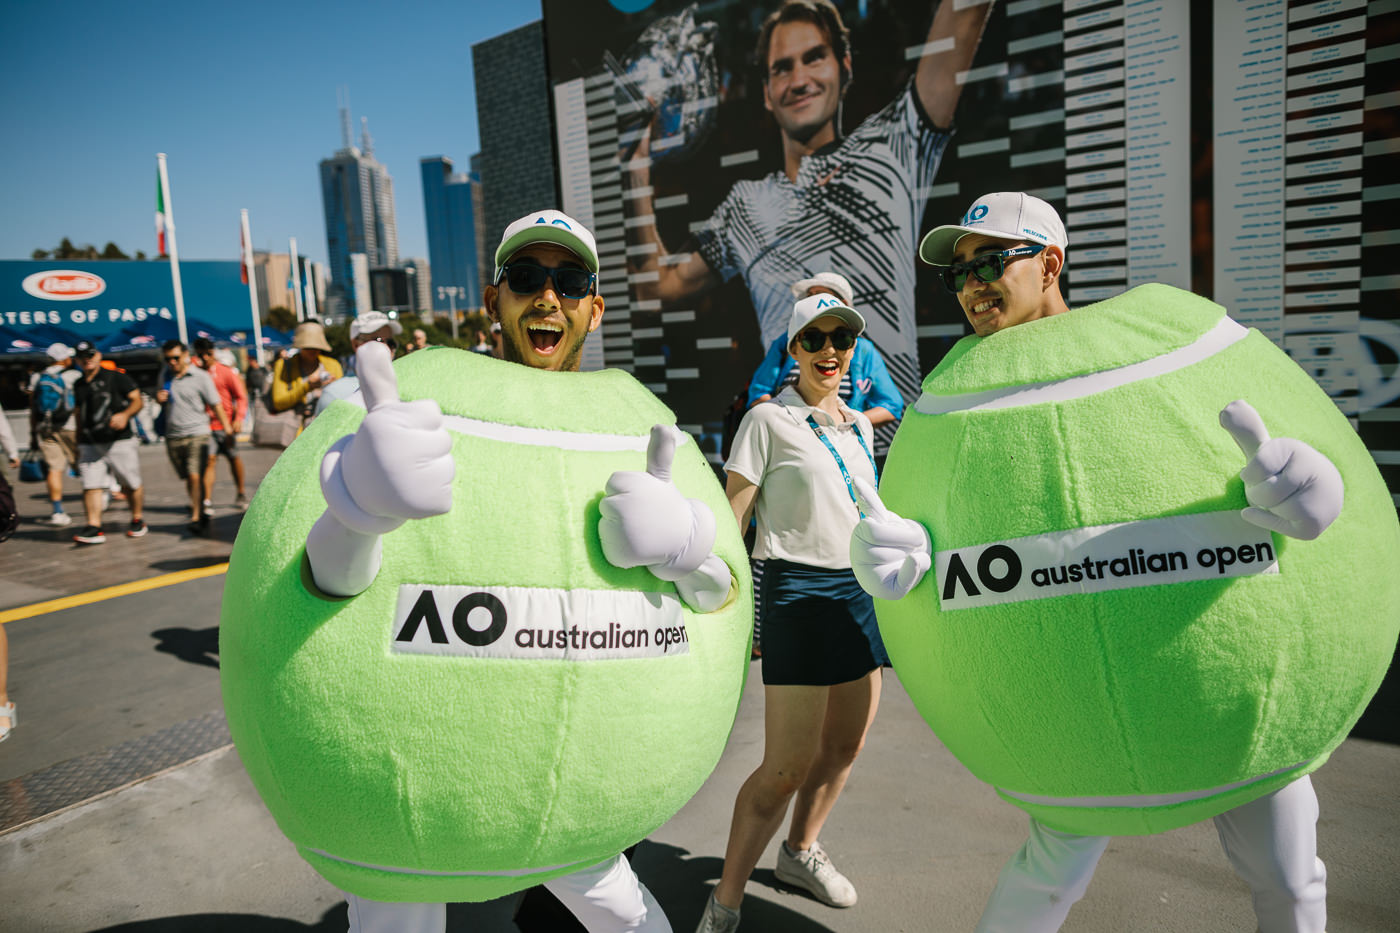 ball mascot at the australian open